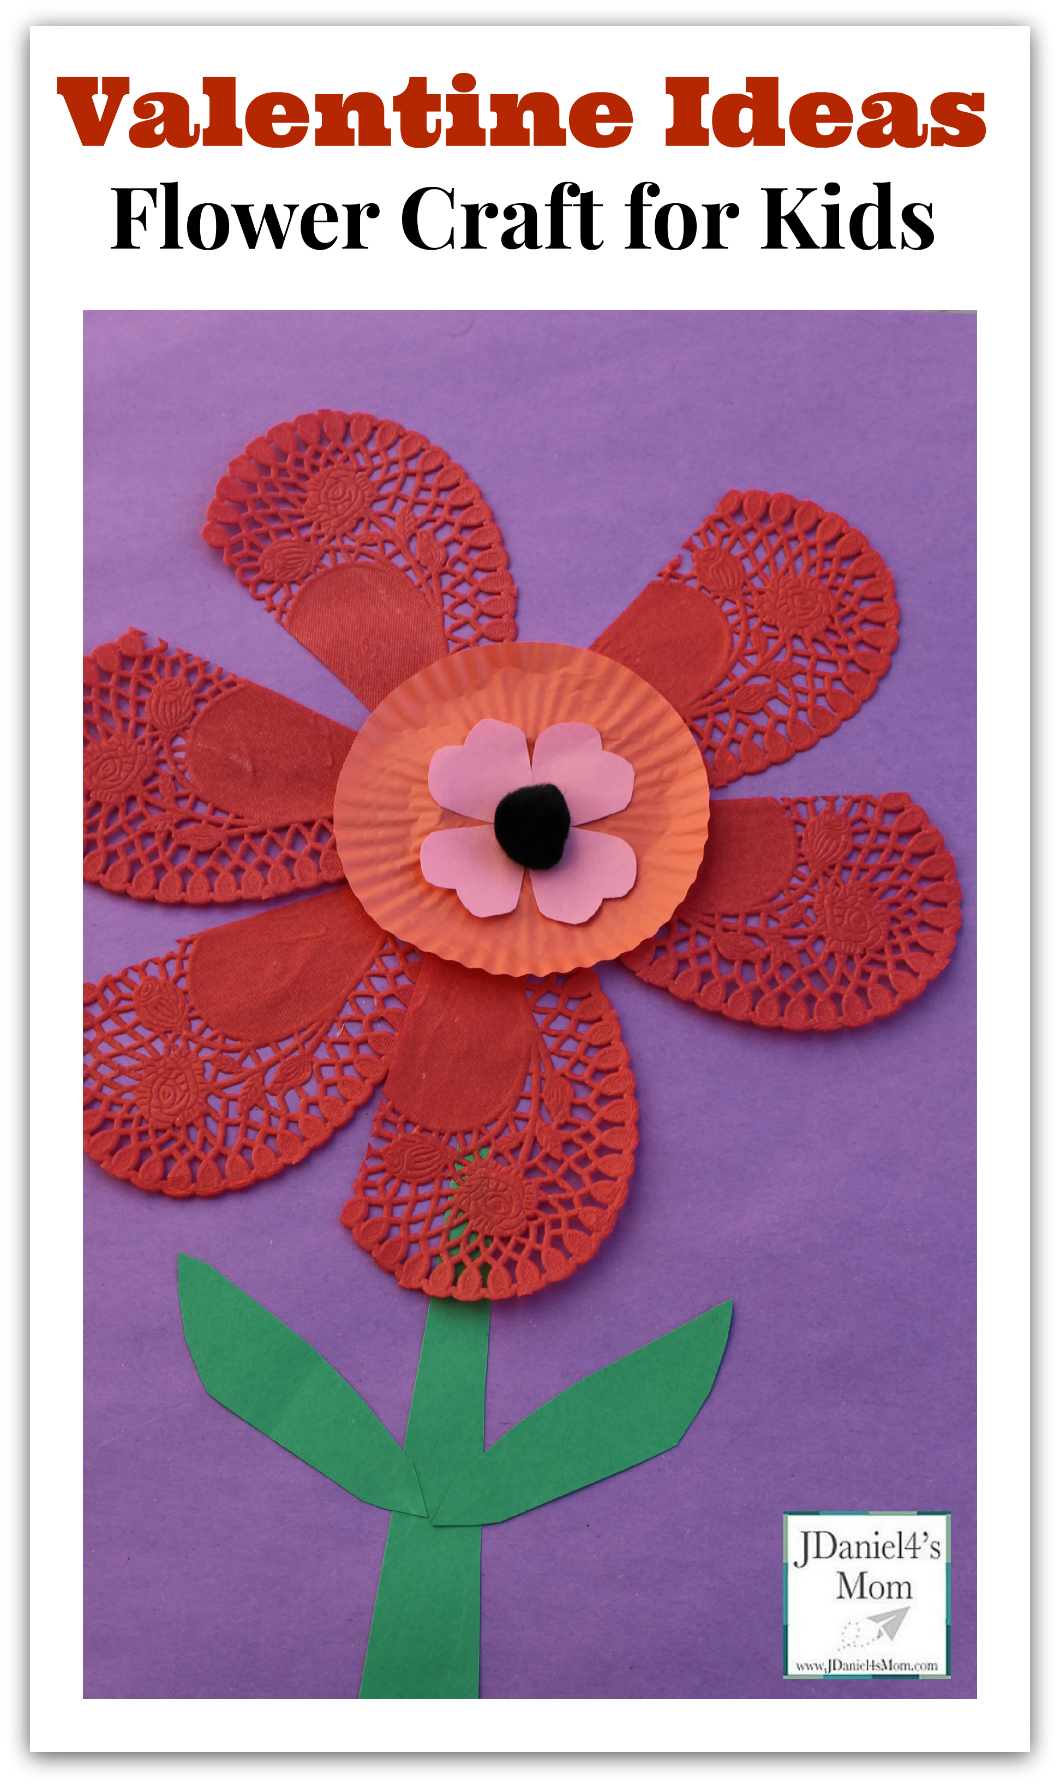 Valentine ideas flower craft for kids for Crafts for valentines day ideas